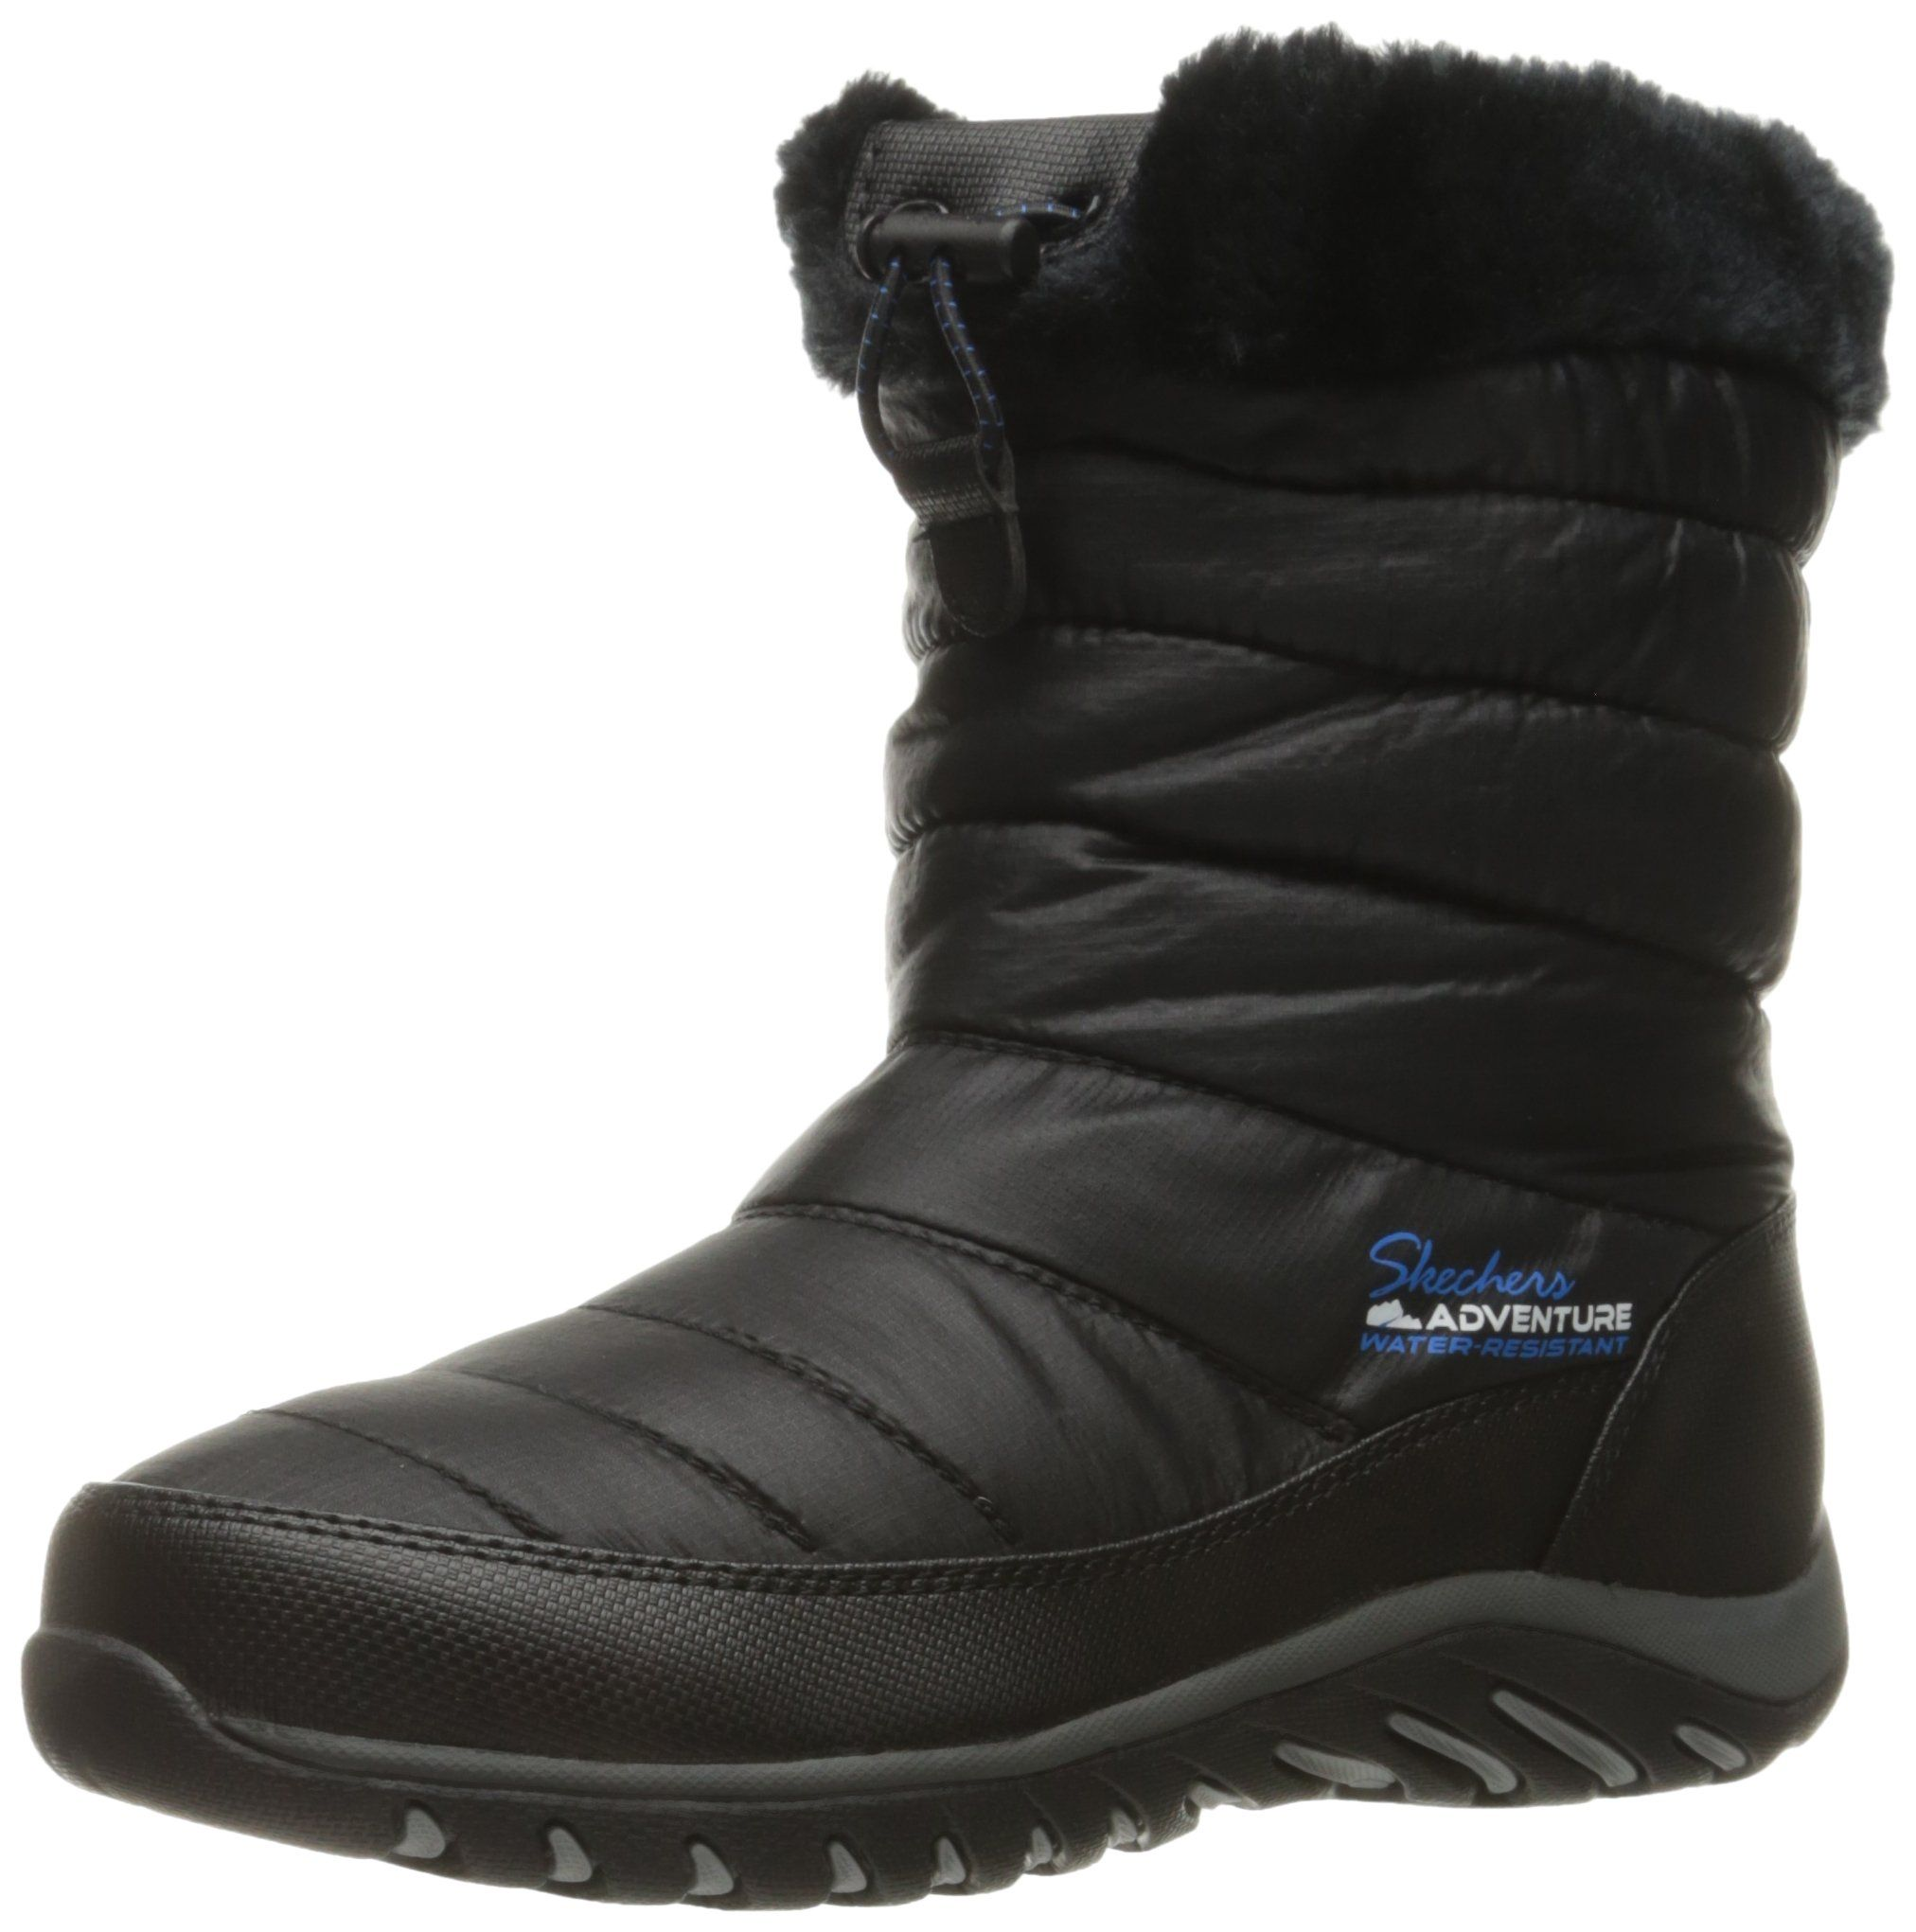 Skechers Women's Descender Winter Boot, Black, 6.5 M US. Warm tech memory  foam